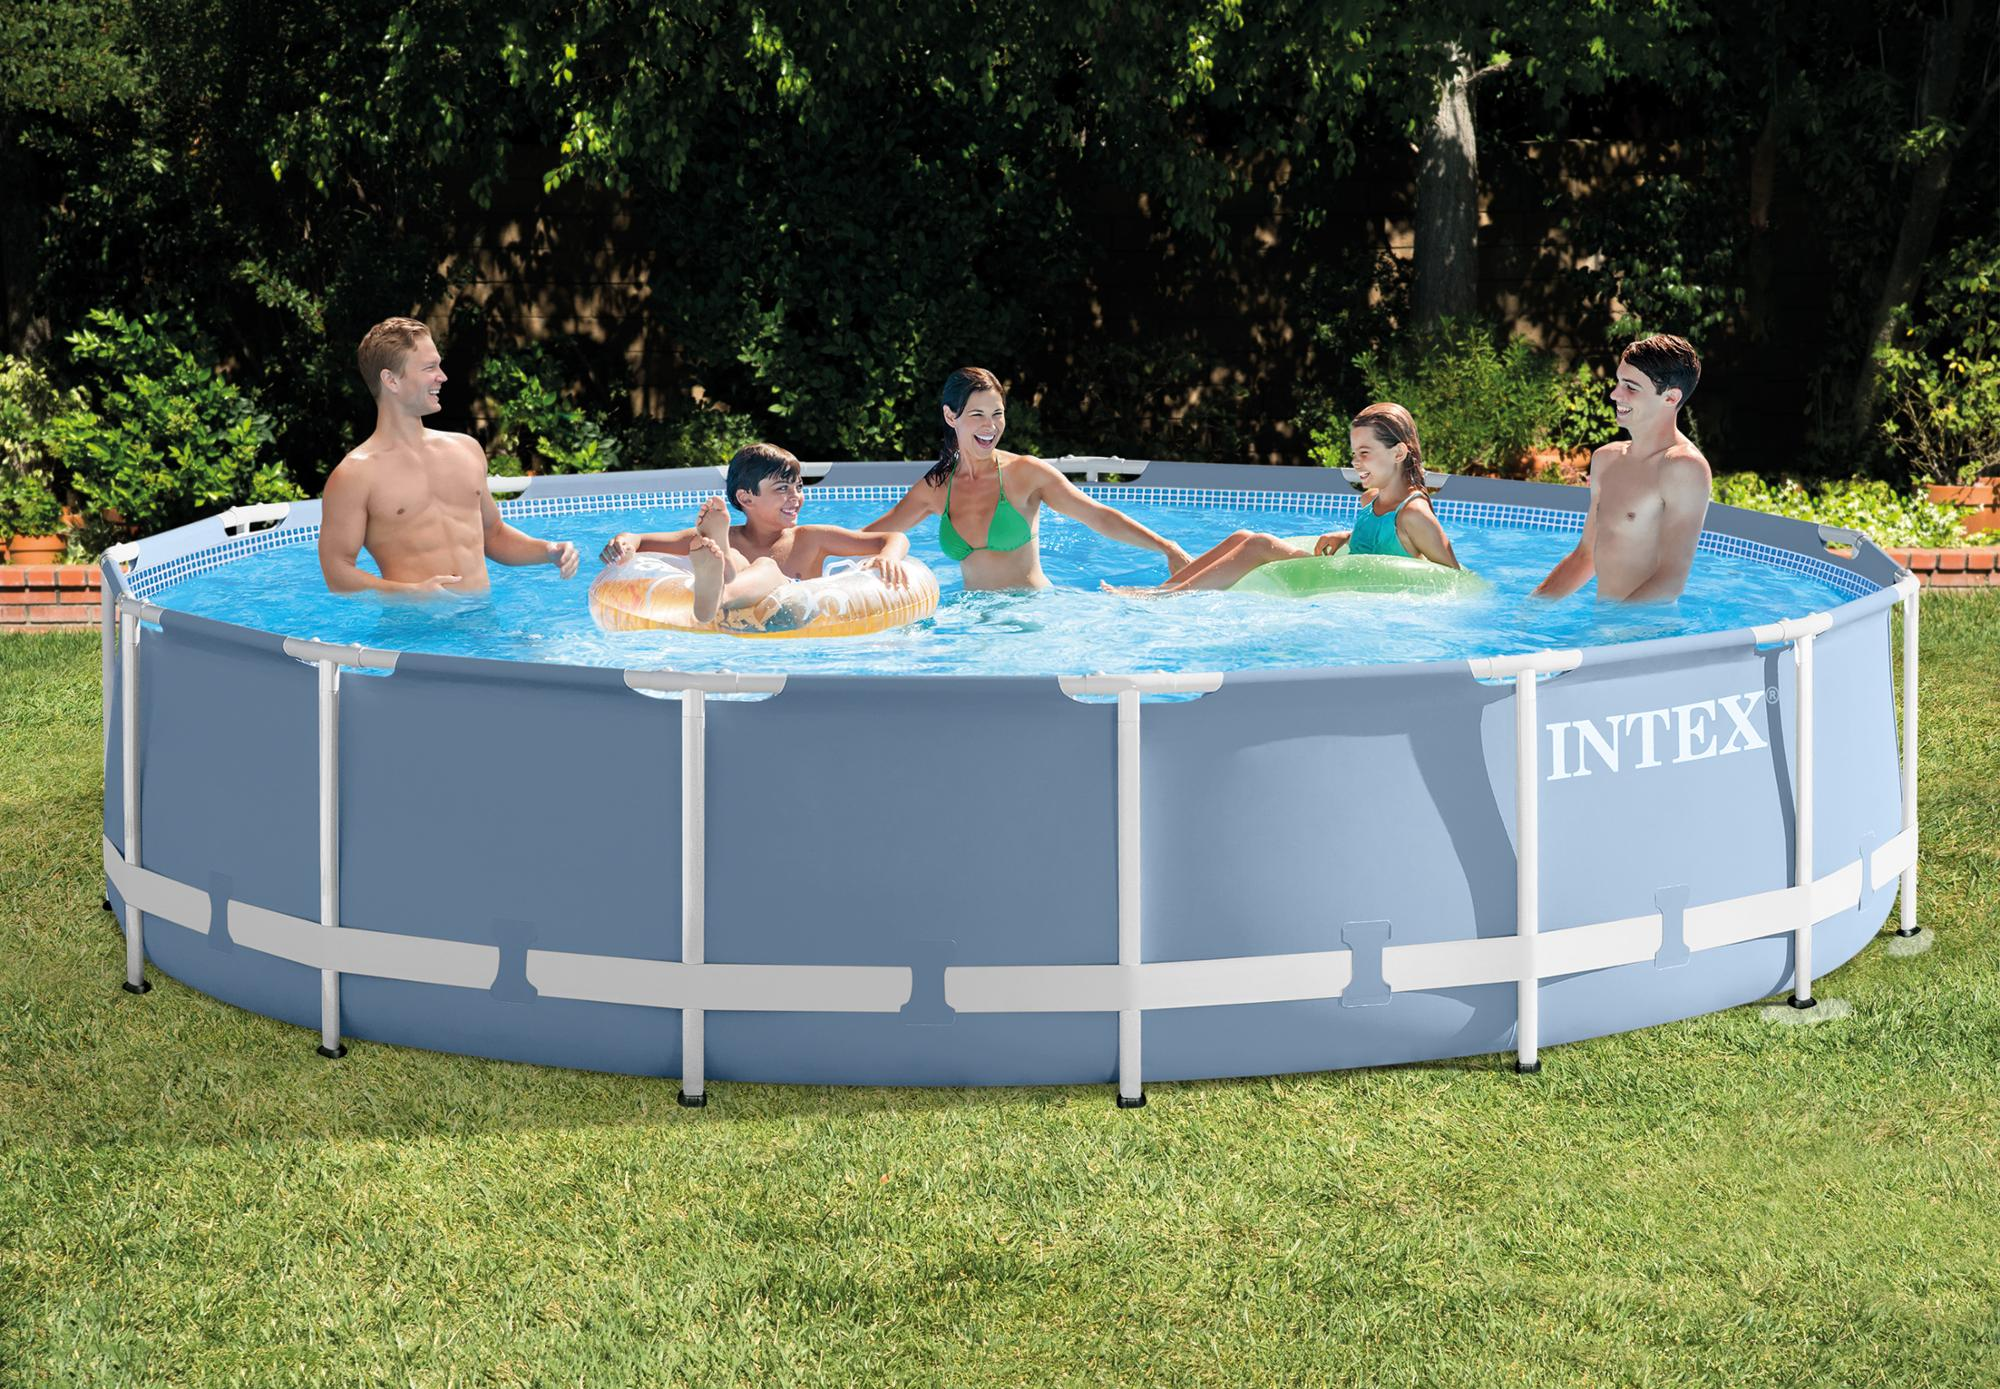 Action Zwembad Intex Intex 26736 Round Ultra Metal Frame Outdoor Above Ground Swimming